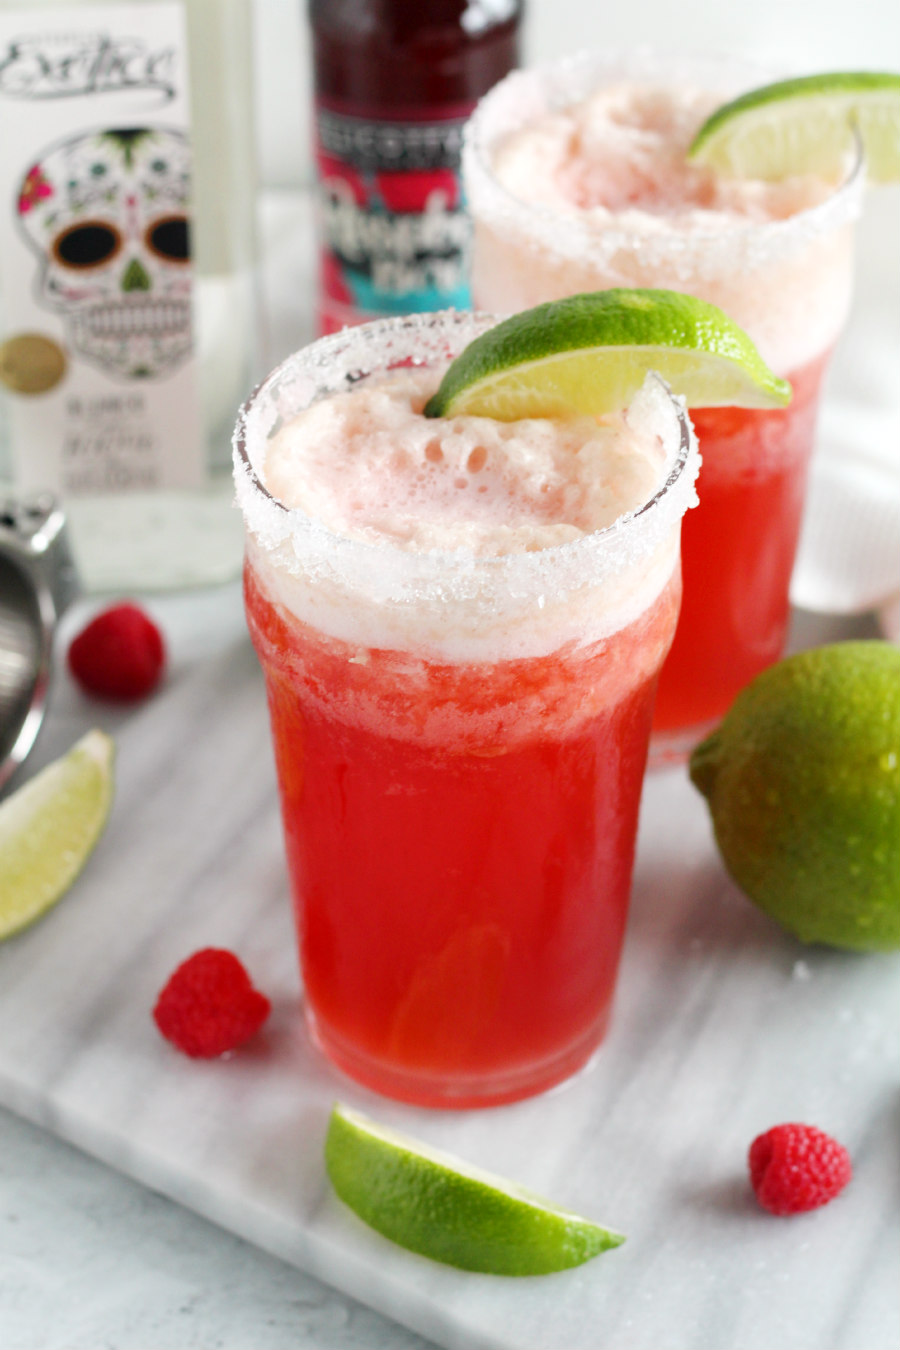 This Raspberry Beergarita Recipe is made with raspberry flavored beer and classic margarita ingredients.  It's a fruity beer cocktail that combines two popular adult beverages into one delicious drink! Just blend 6 ingredients together for the perfect spring cocktail!